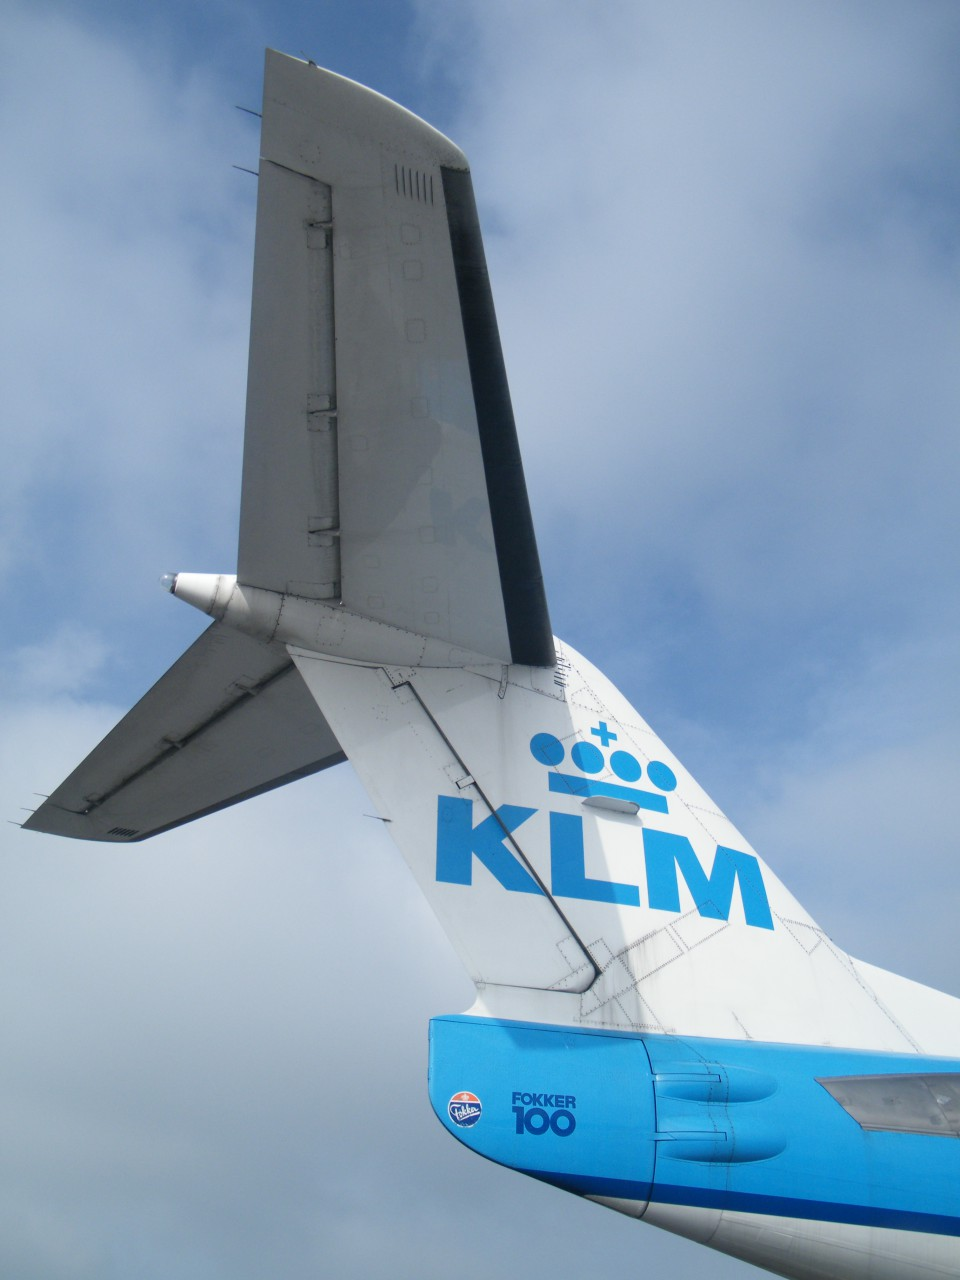 Tail of a Fokker 100